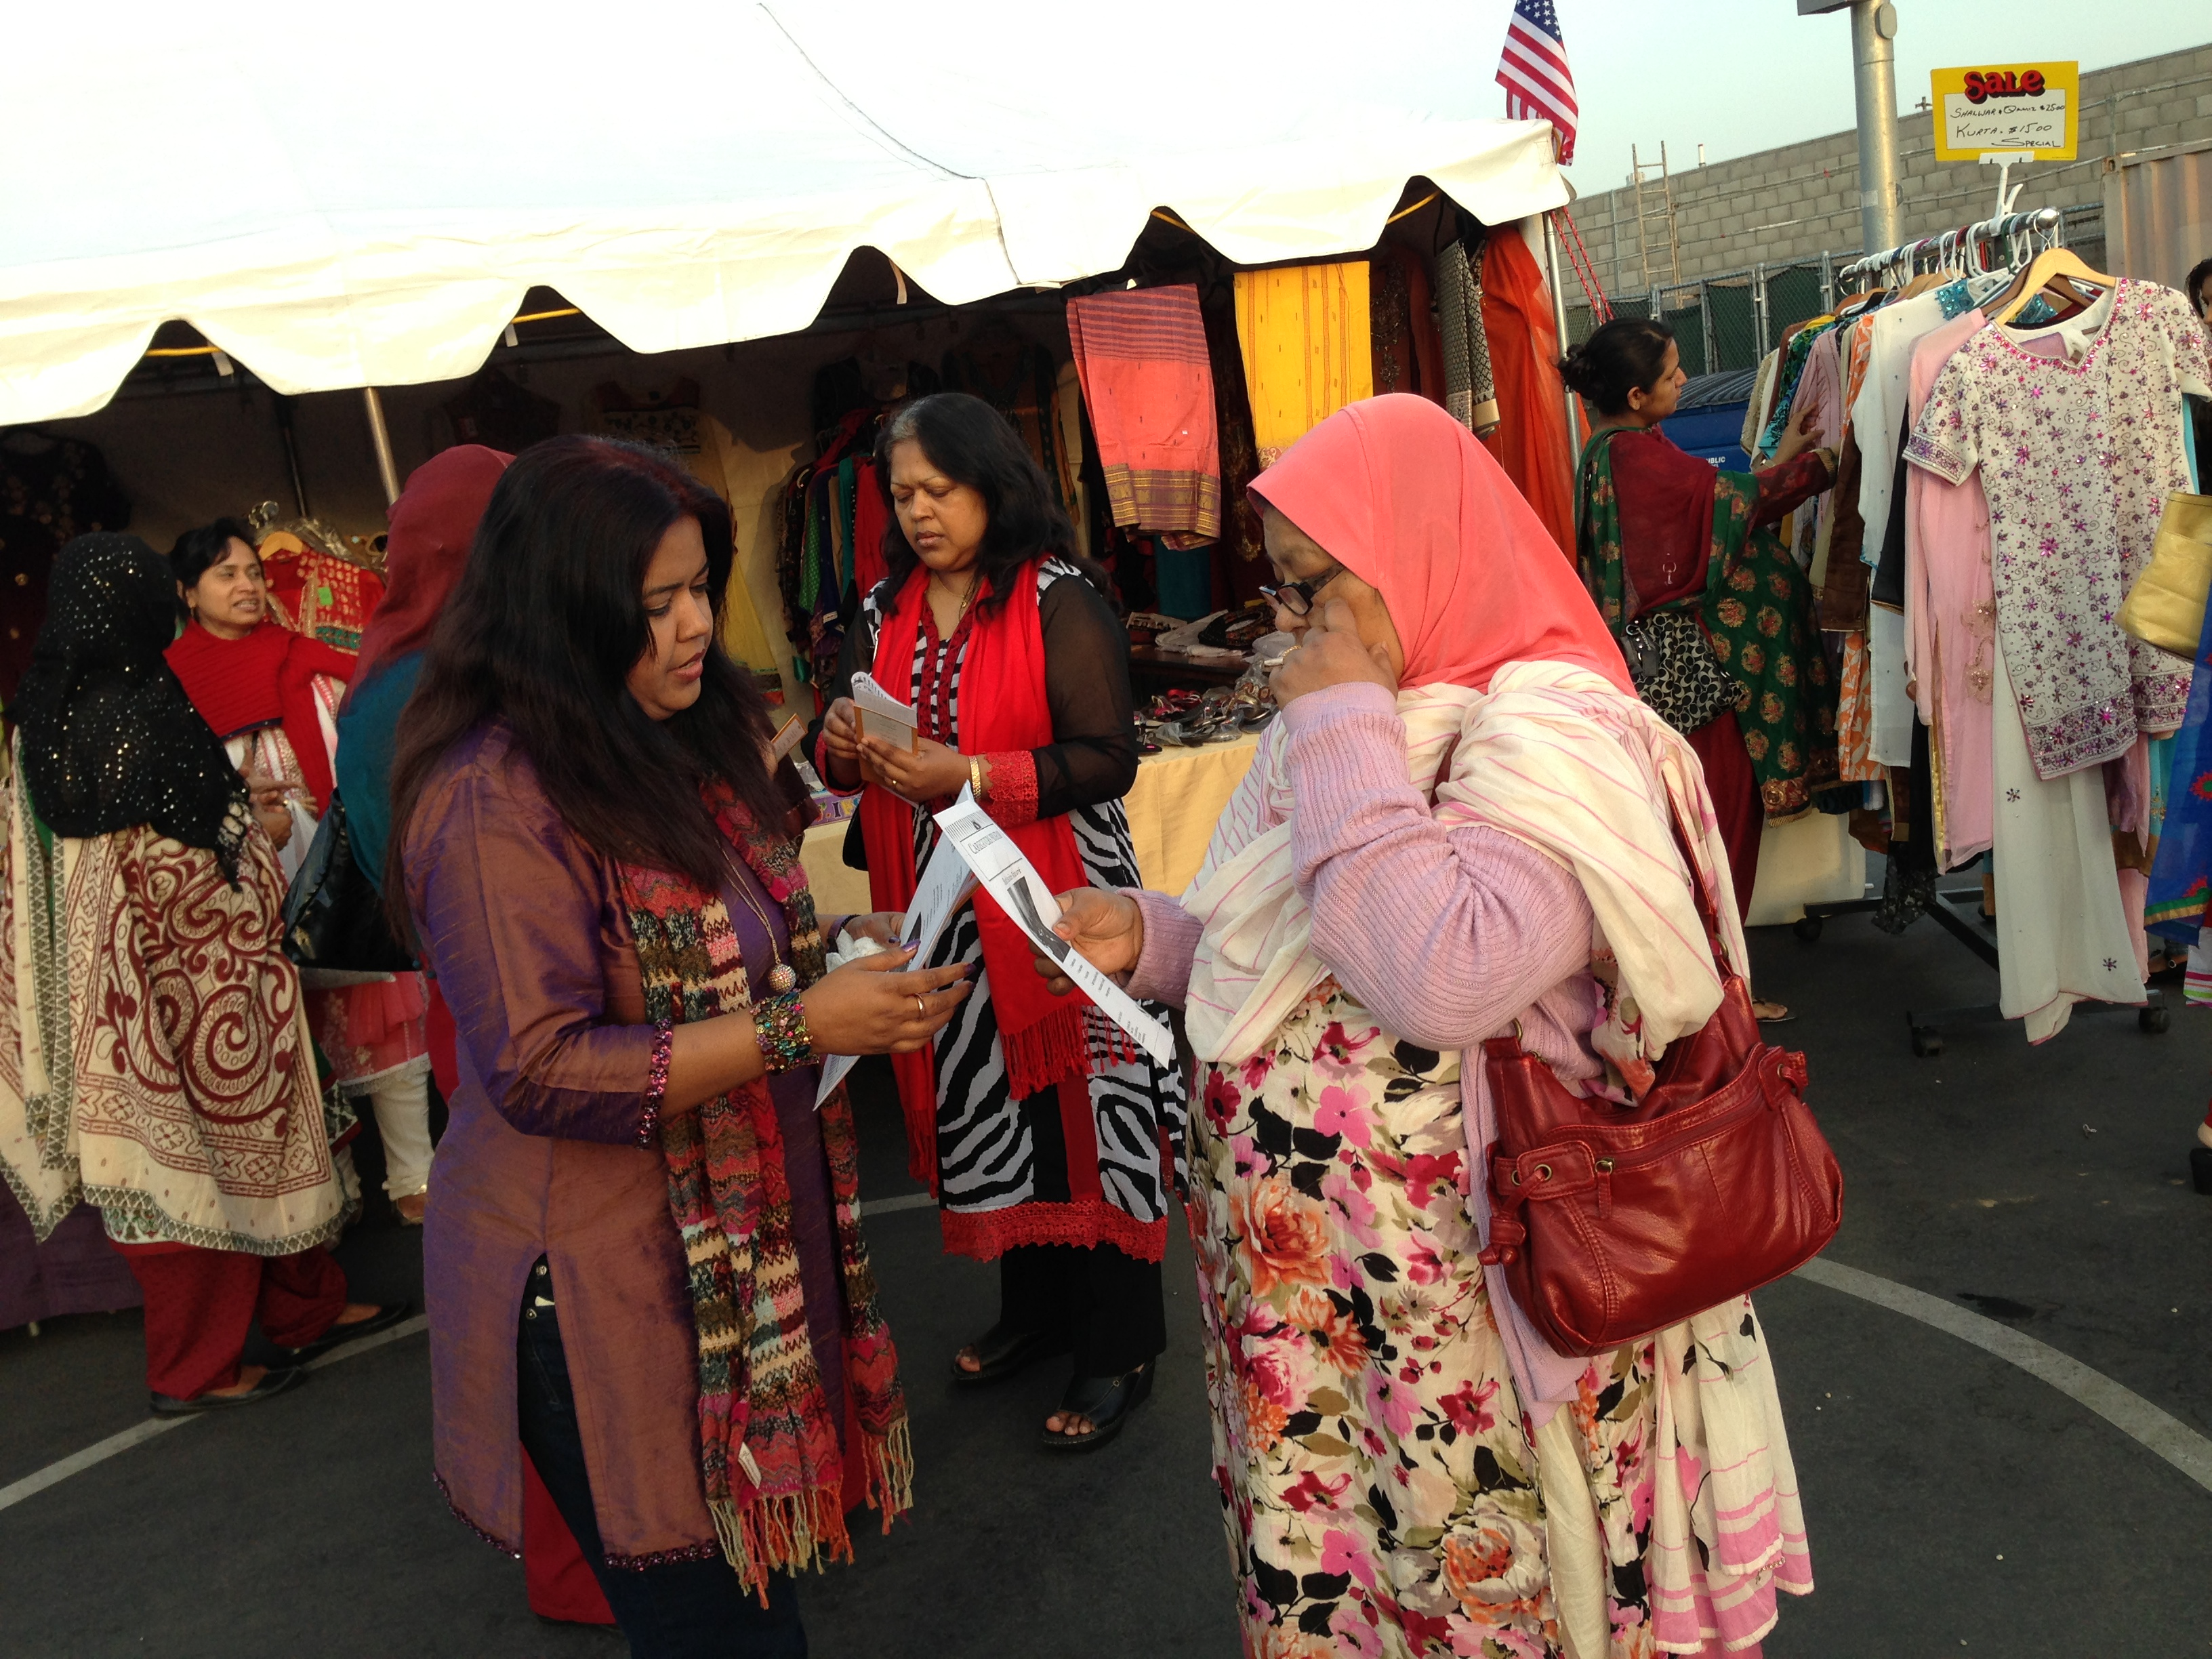 Riffat Rahman, a health care advocate, conducts outreach about the Affordable Care Act in a Los Angeles neighborhood called Little Bangladesh.